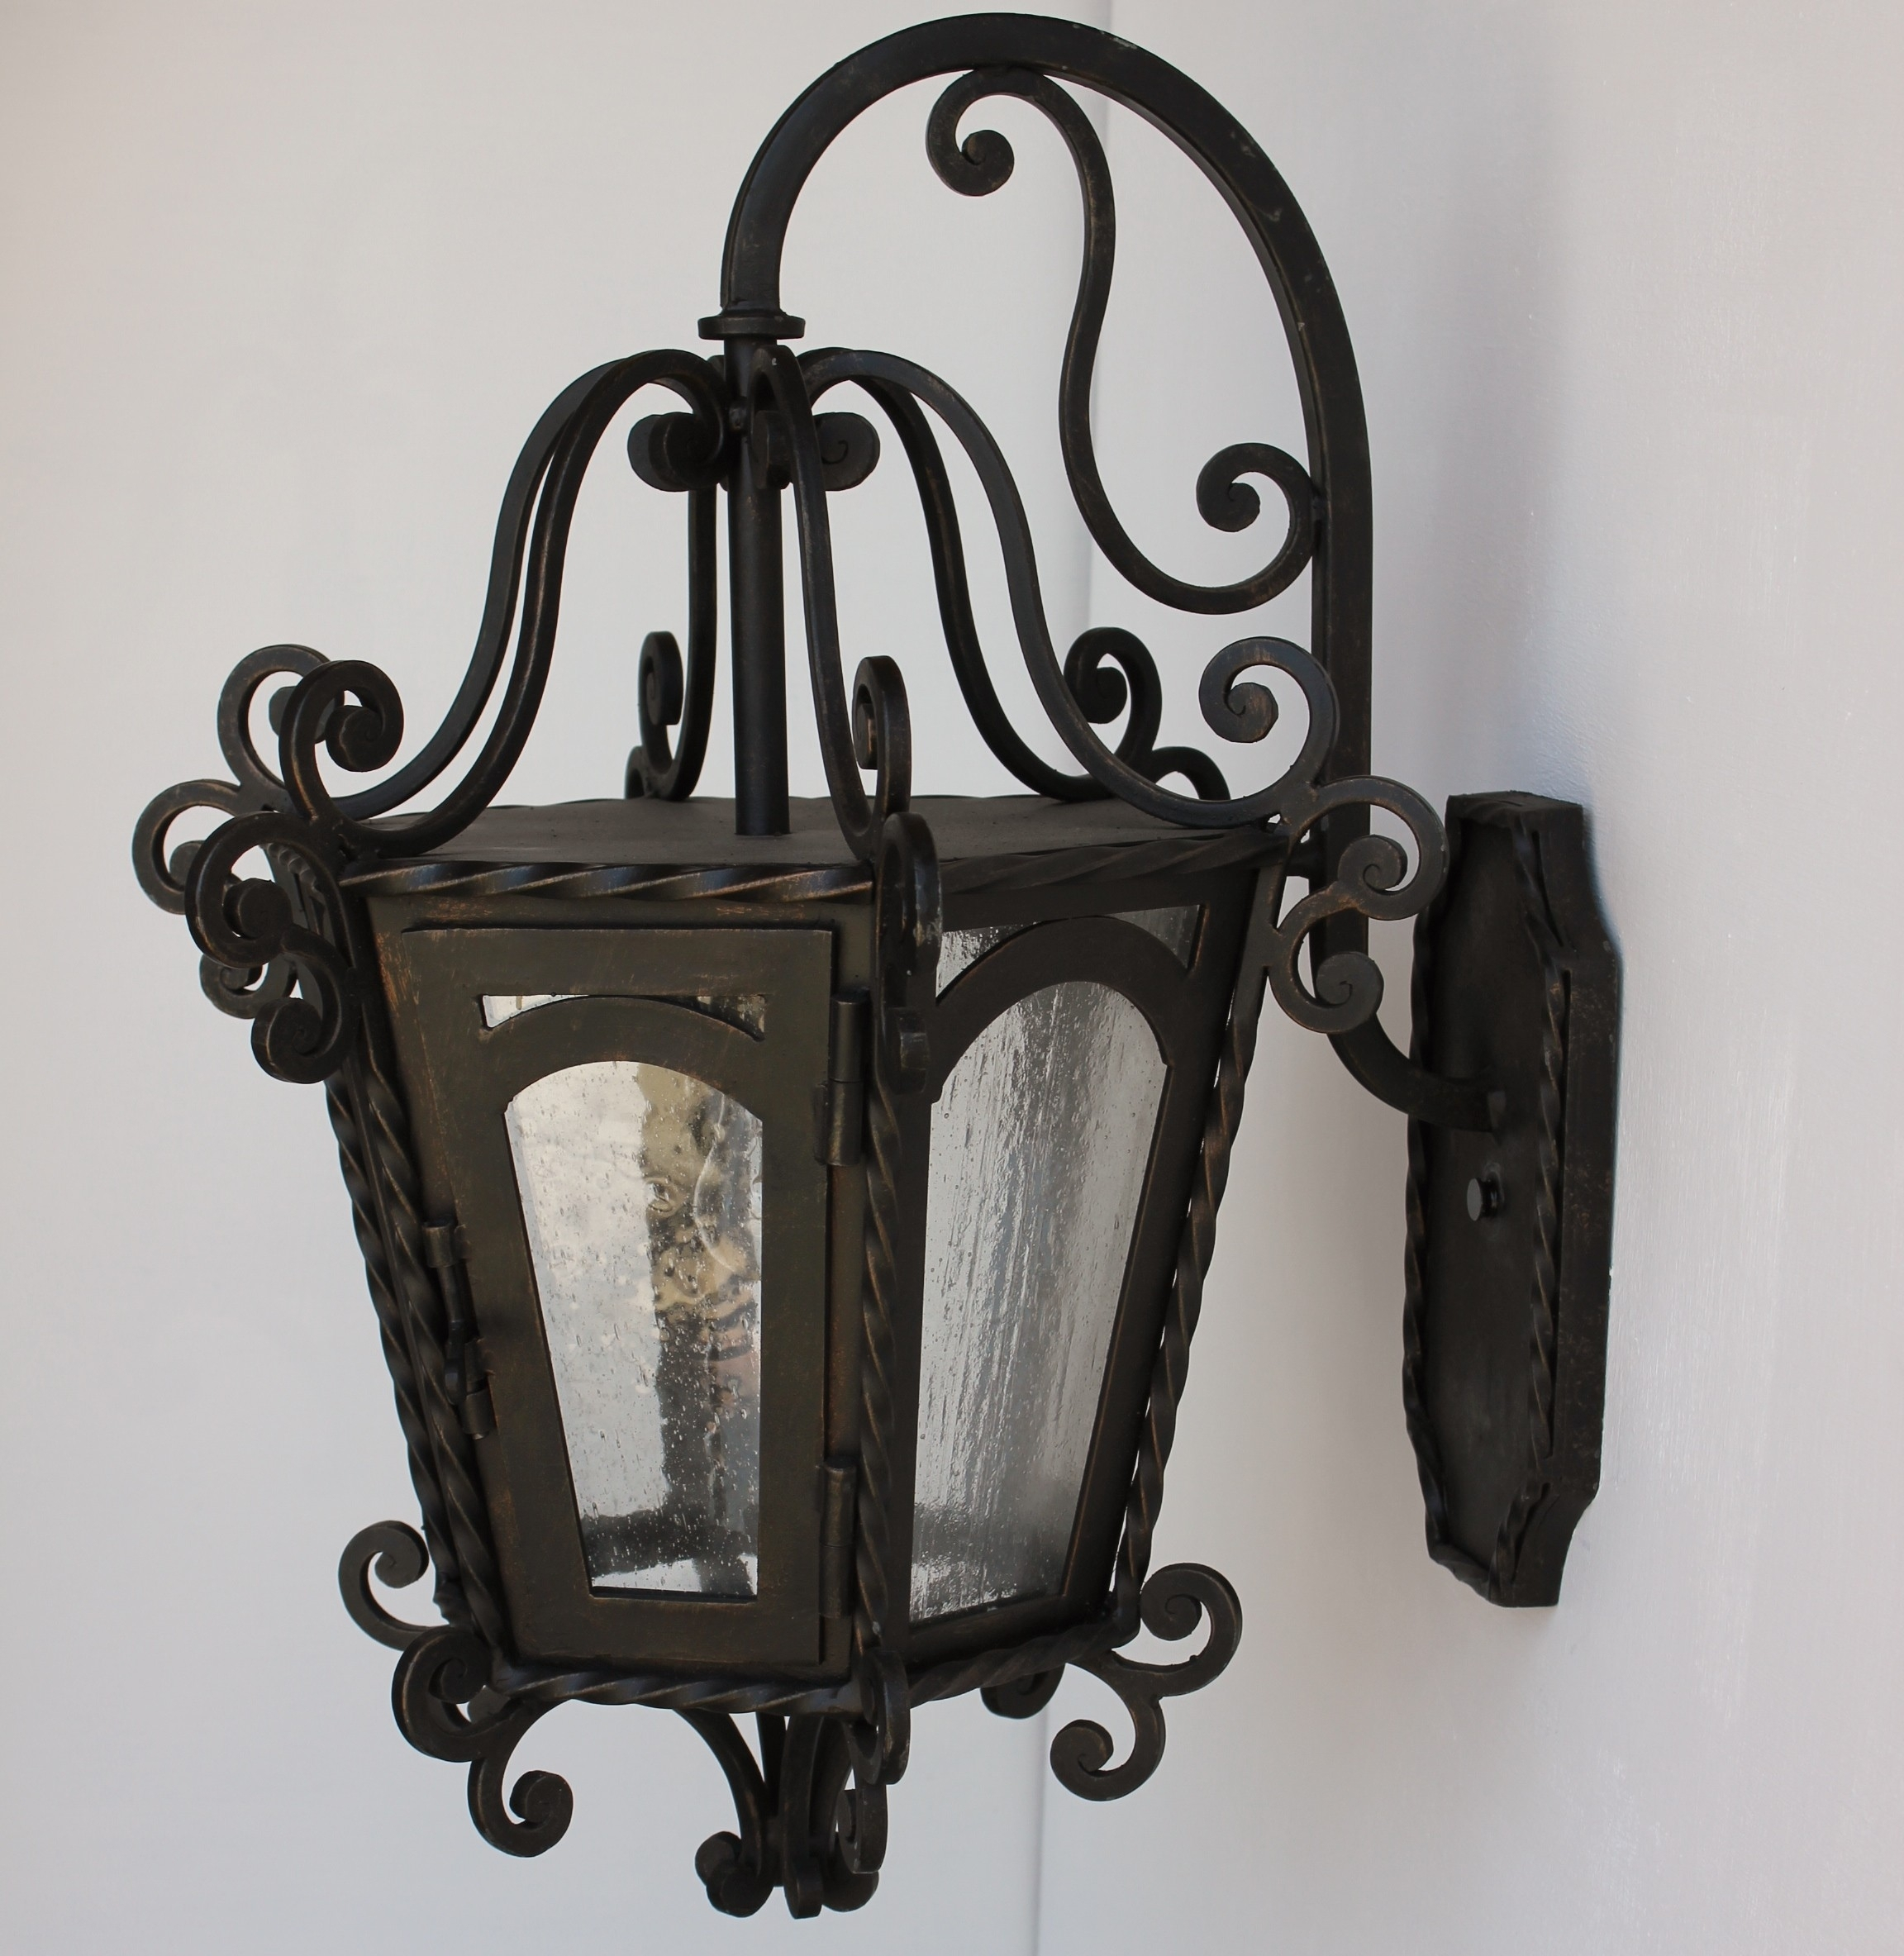 Lights Of Tuscany Outdoor/exterior Wall Lighting - Outdoor/exterior for Outdoor Iron Lanterns (Image 14 of 20)